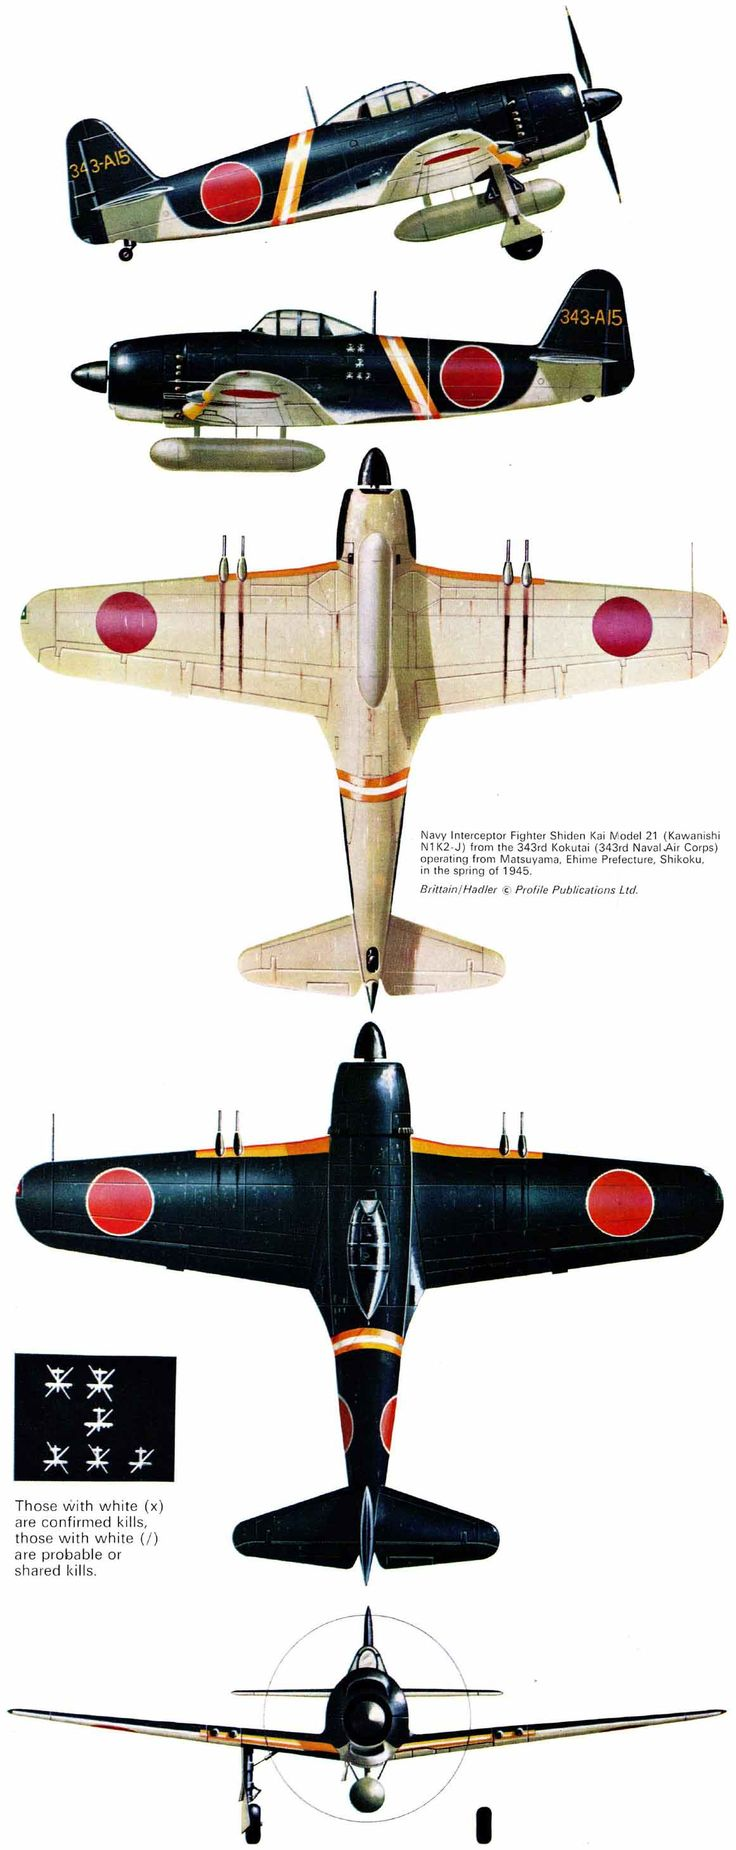 376 Best Images About Beautiful Coloring Pages On: 376 Best Images About JAPANESE AIRCRAFT OF WORLD WAR 2 On